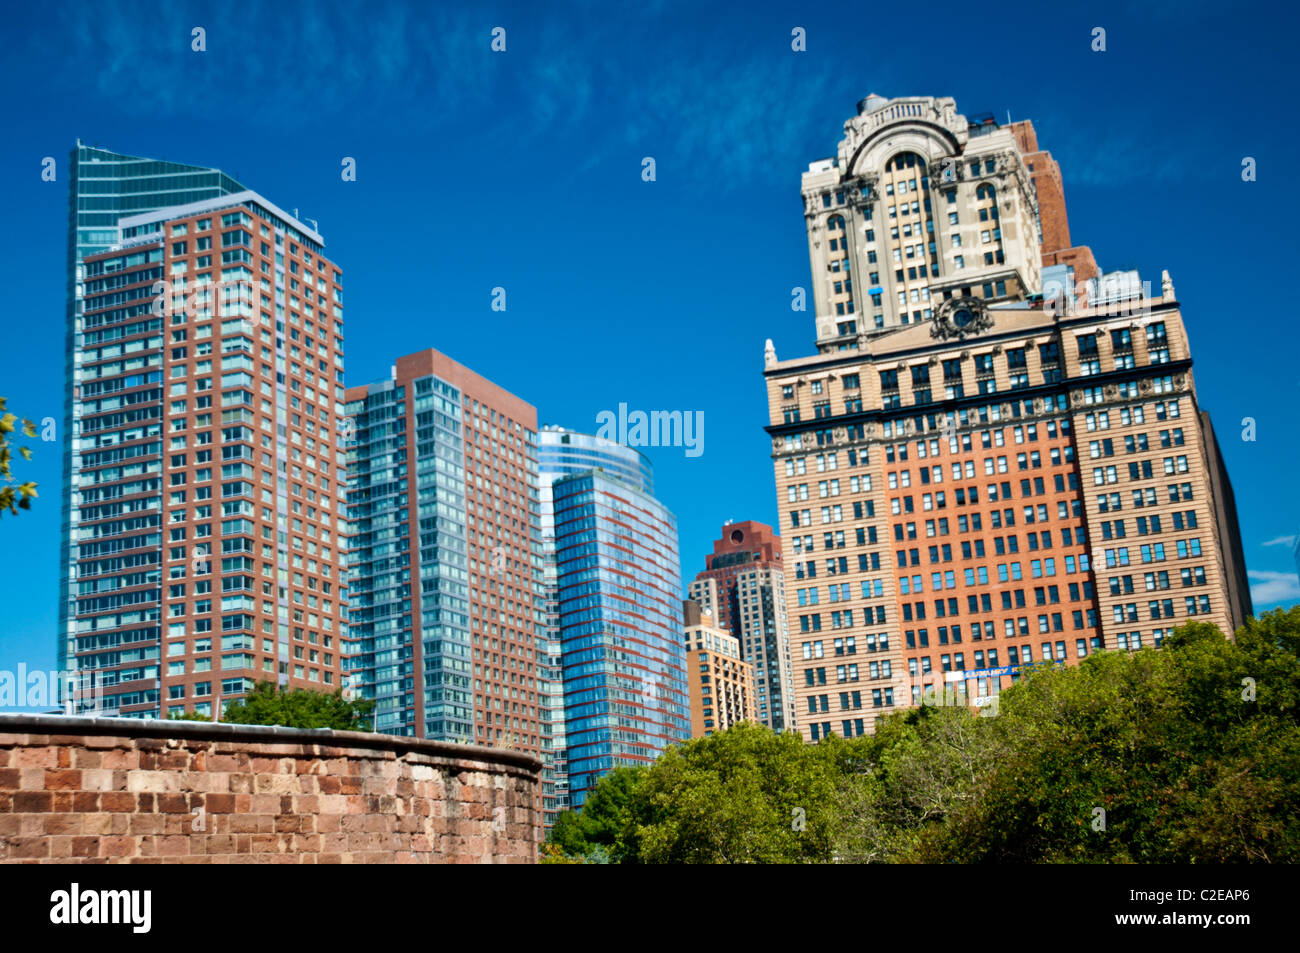 17 Battery Place And Other Apartment Buildings Near Battery Park,  Manhattan, New York City, USA